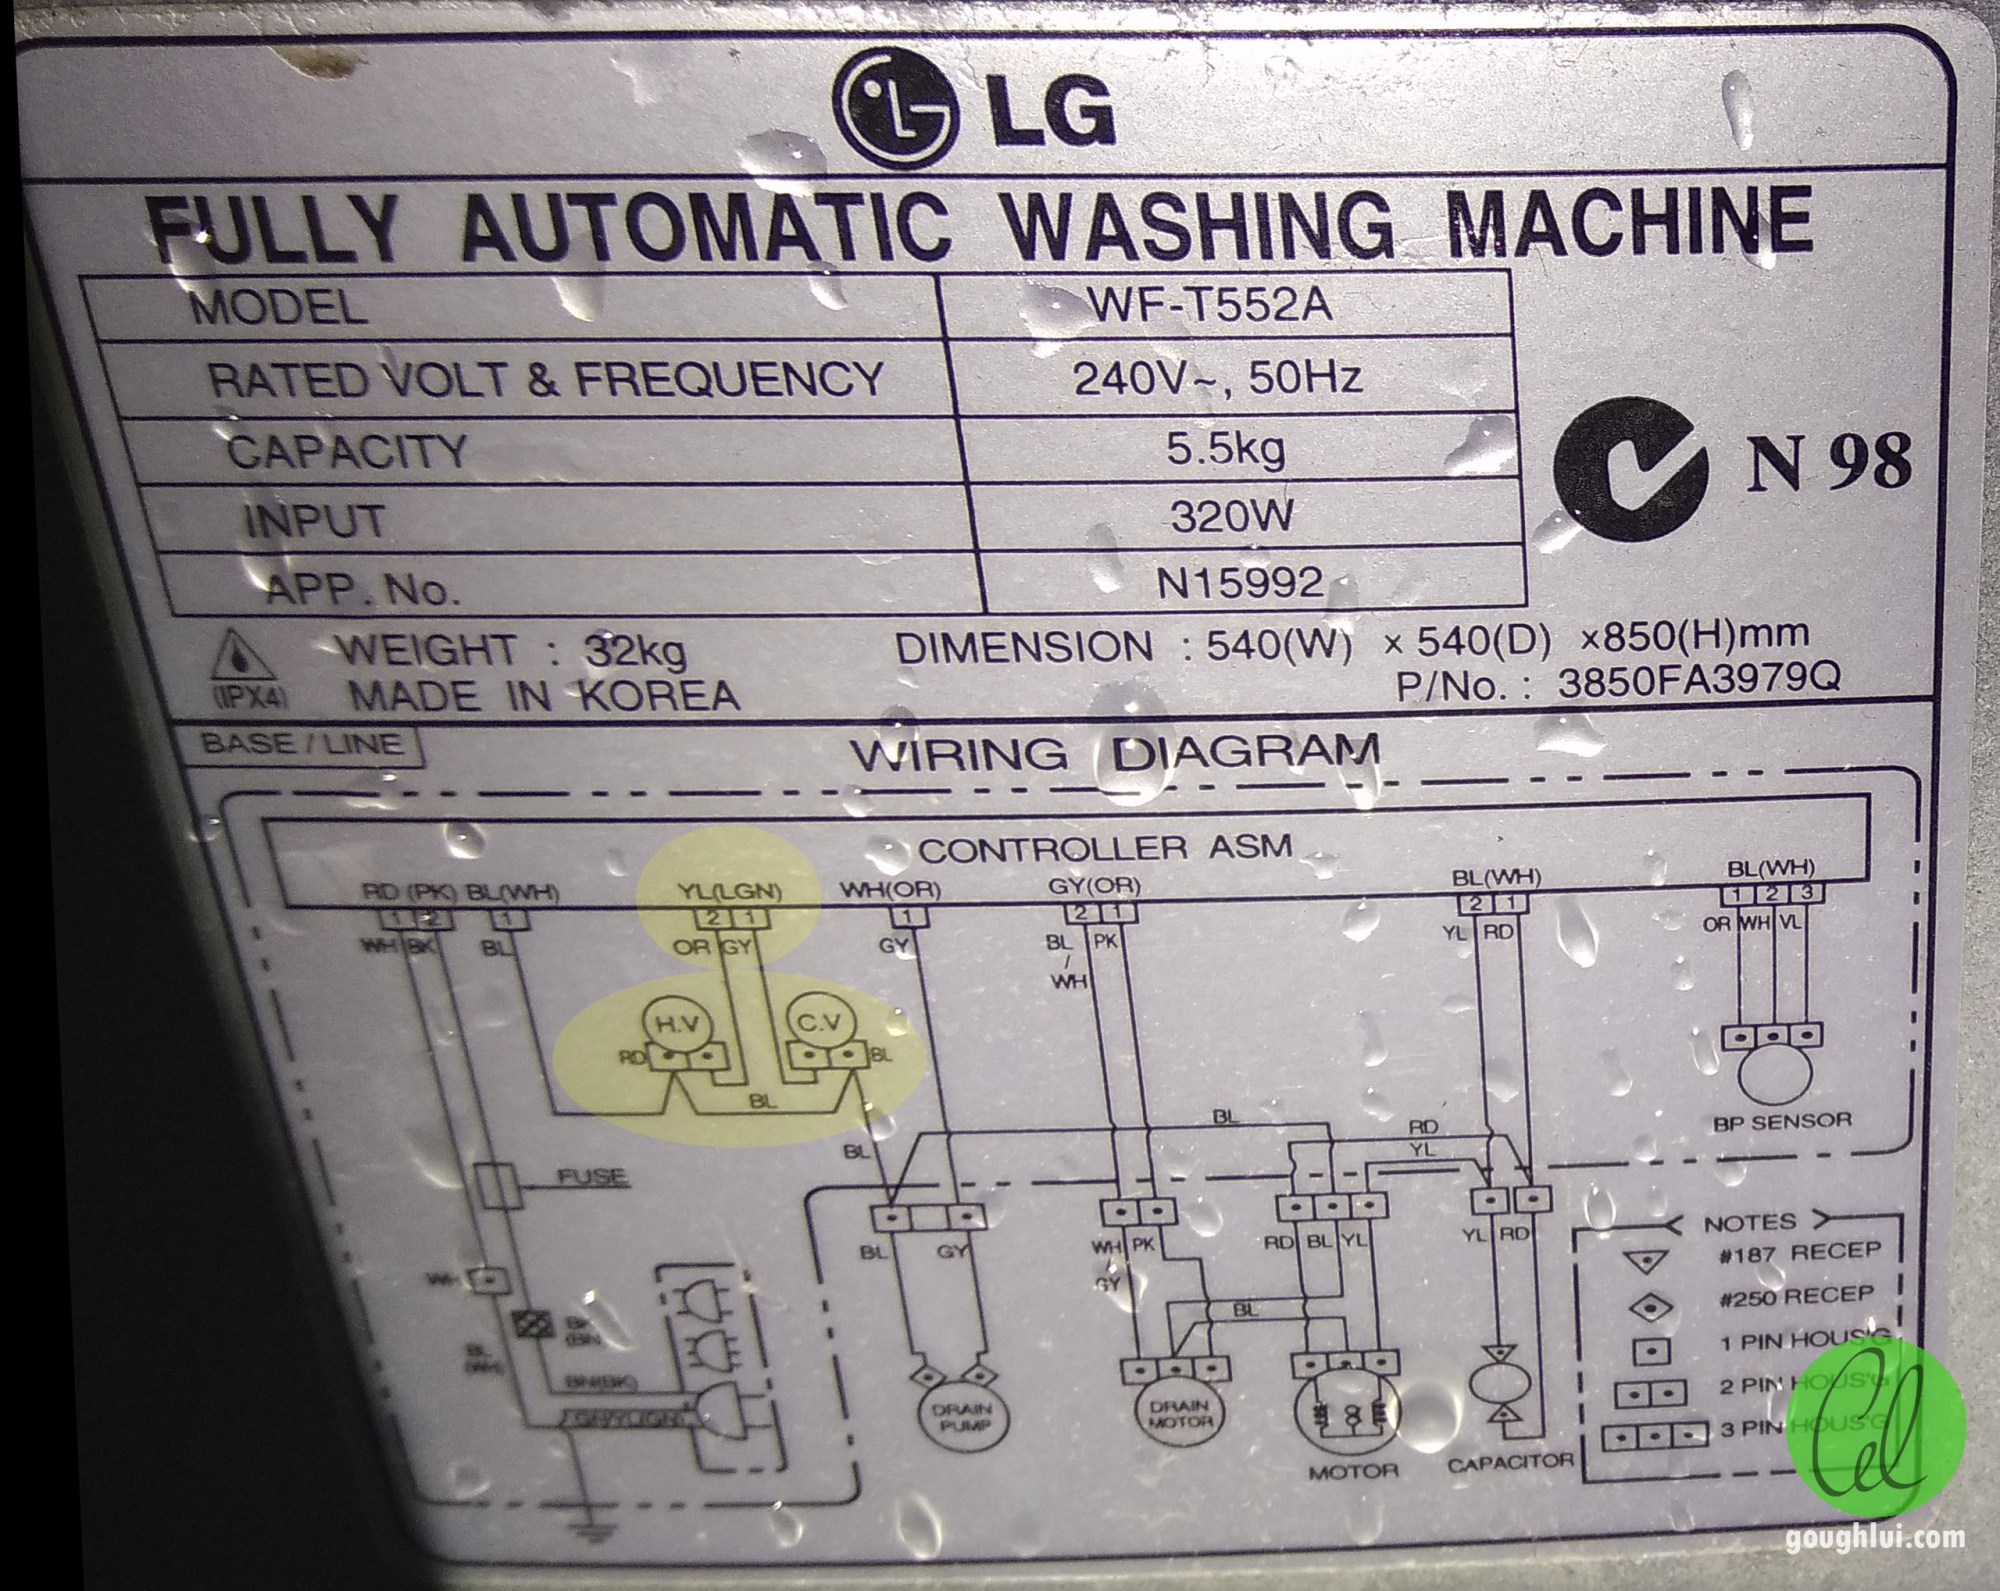 hight resolution of as whitegoods often are still worth repairing lg provided a helpful schematic on the rear to help us understand just how the parts of the machine are